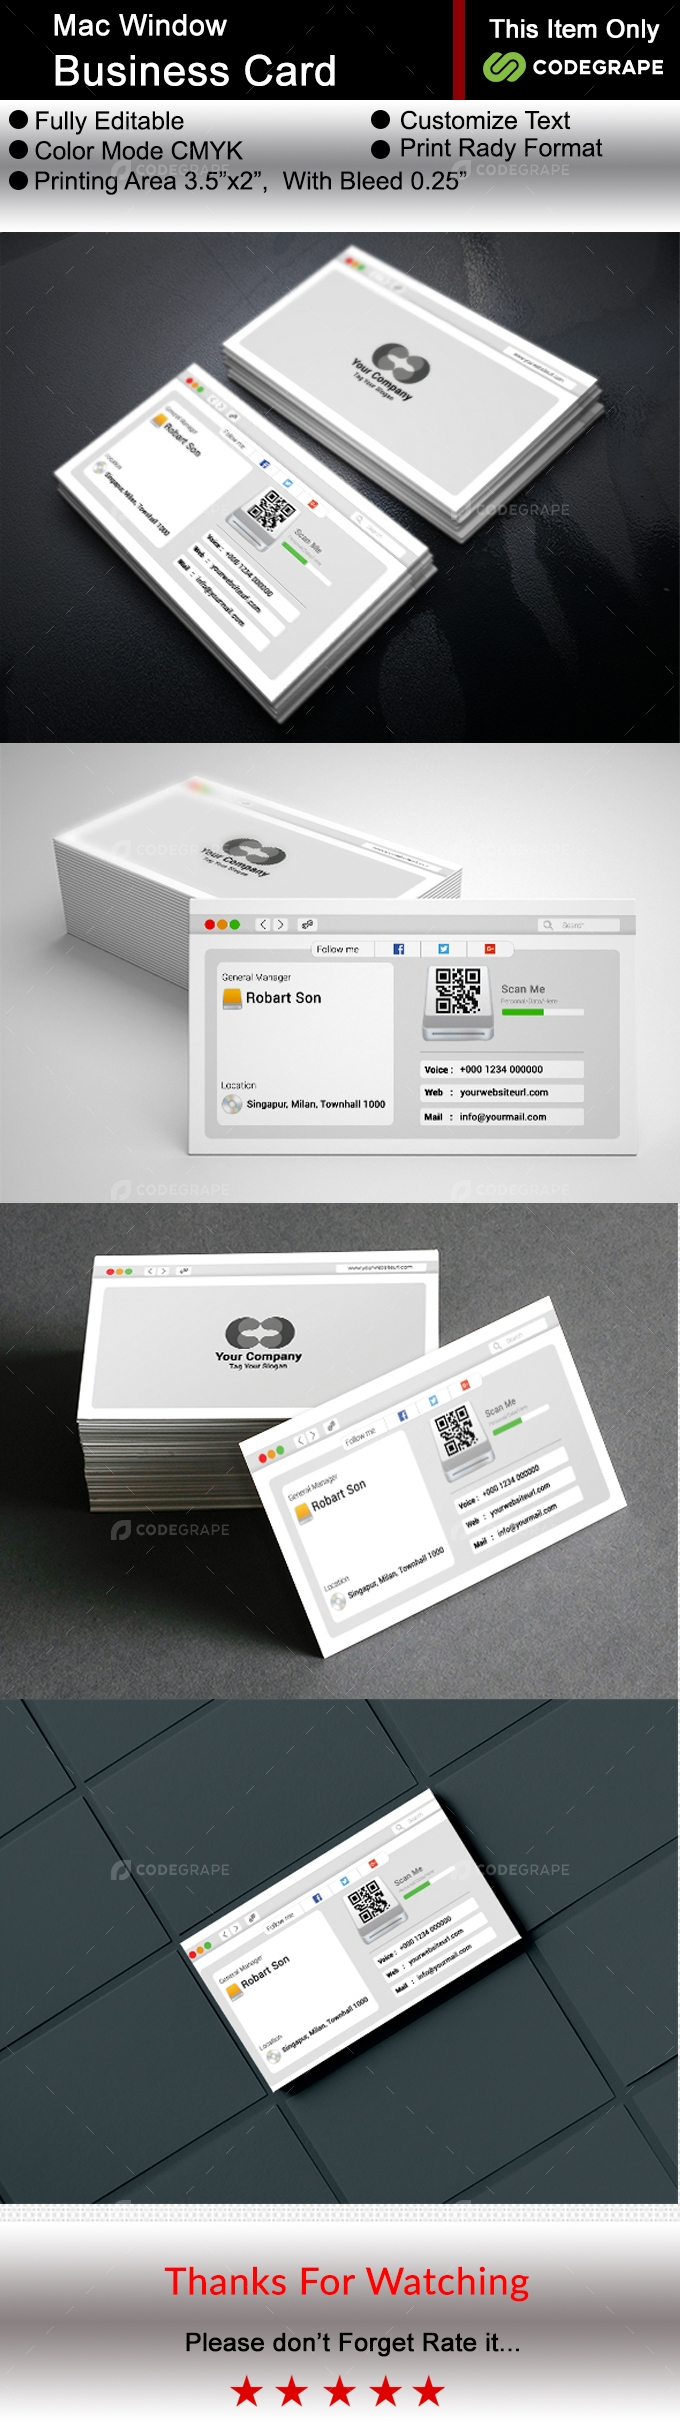 Mac Window Business Card